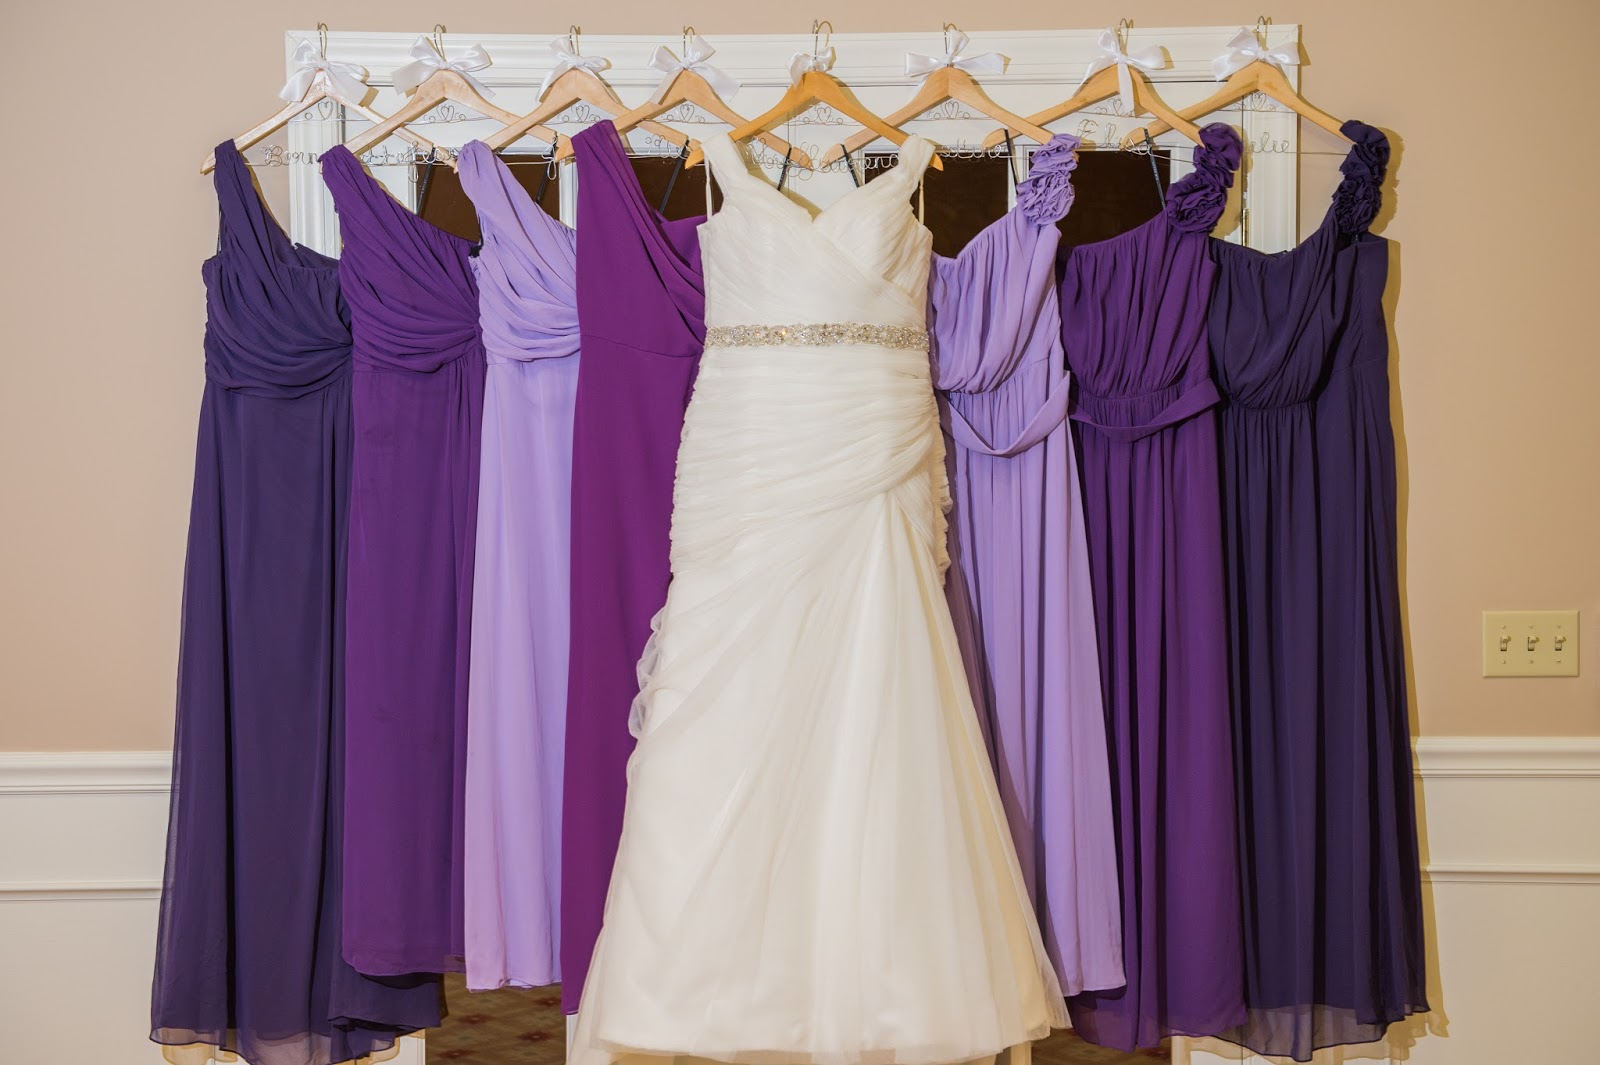 Bridesmaid dresses wedding wednesday dream big buy the shoes i lucked out and got 50 off the dresses if the girls each signed up to receive e mails from weddington way easy ombrellifo Gallery